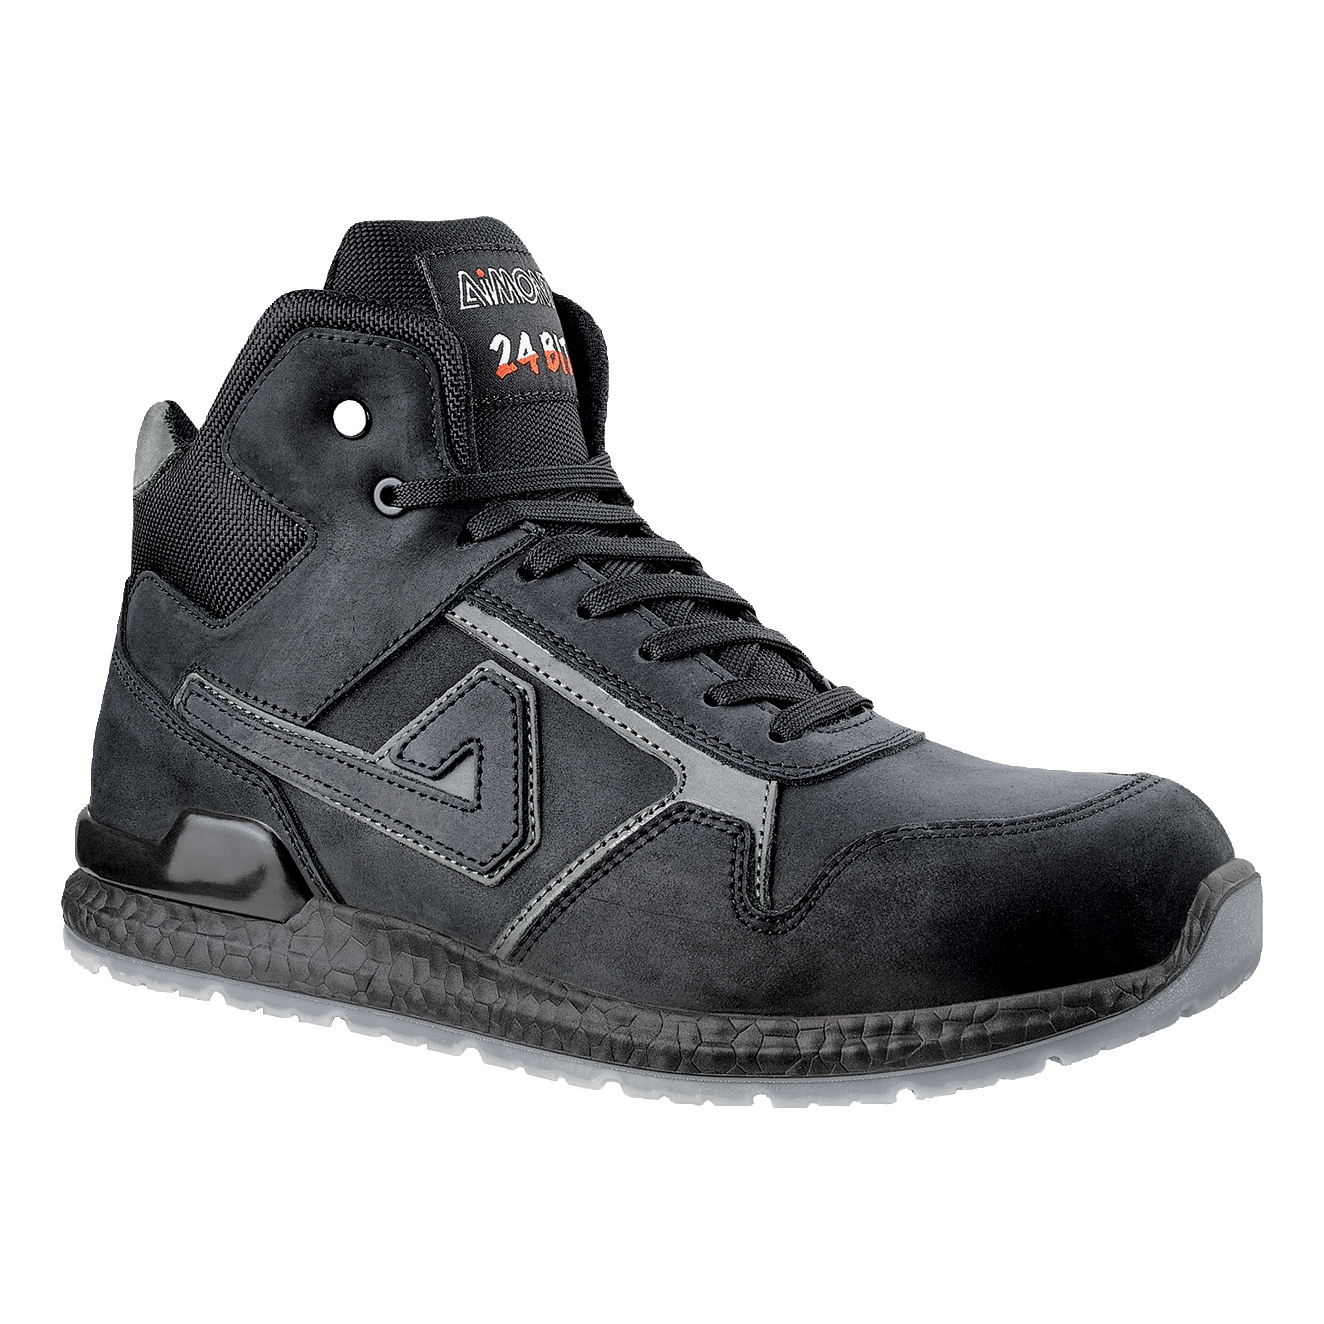 Aimont Kanye Safety Boots Protective Toecap Size 8 Black Ref AB10408 [Pair]